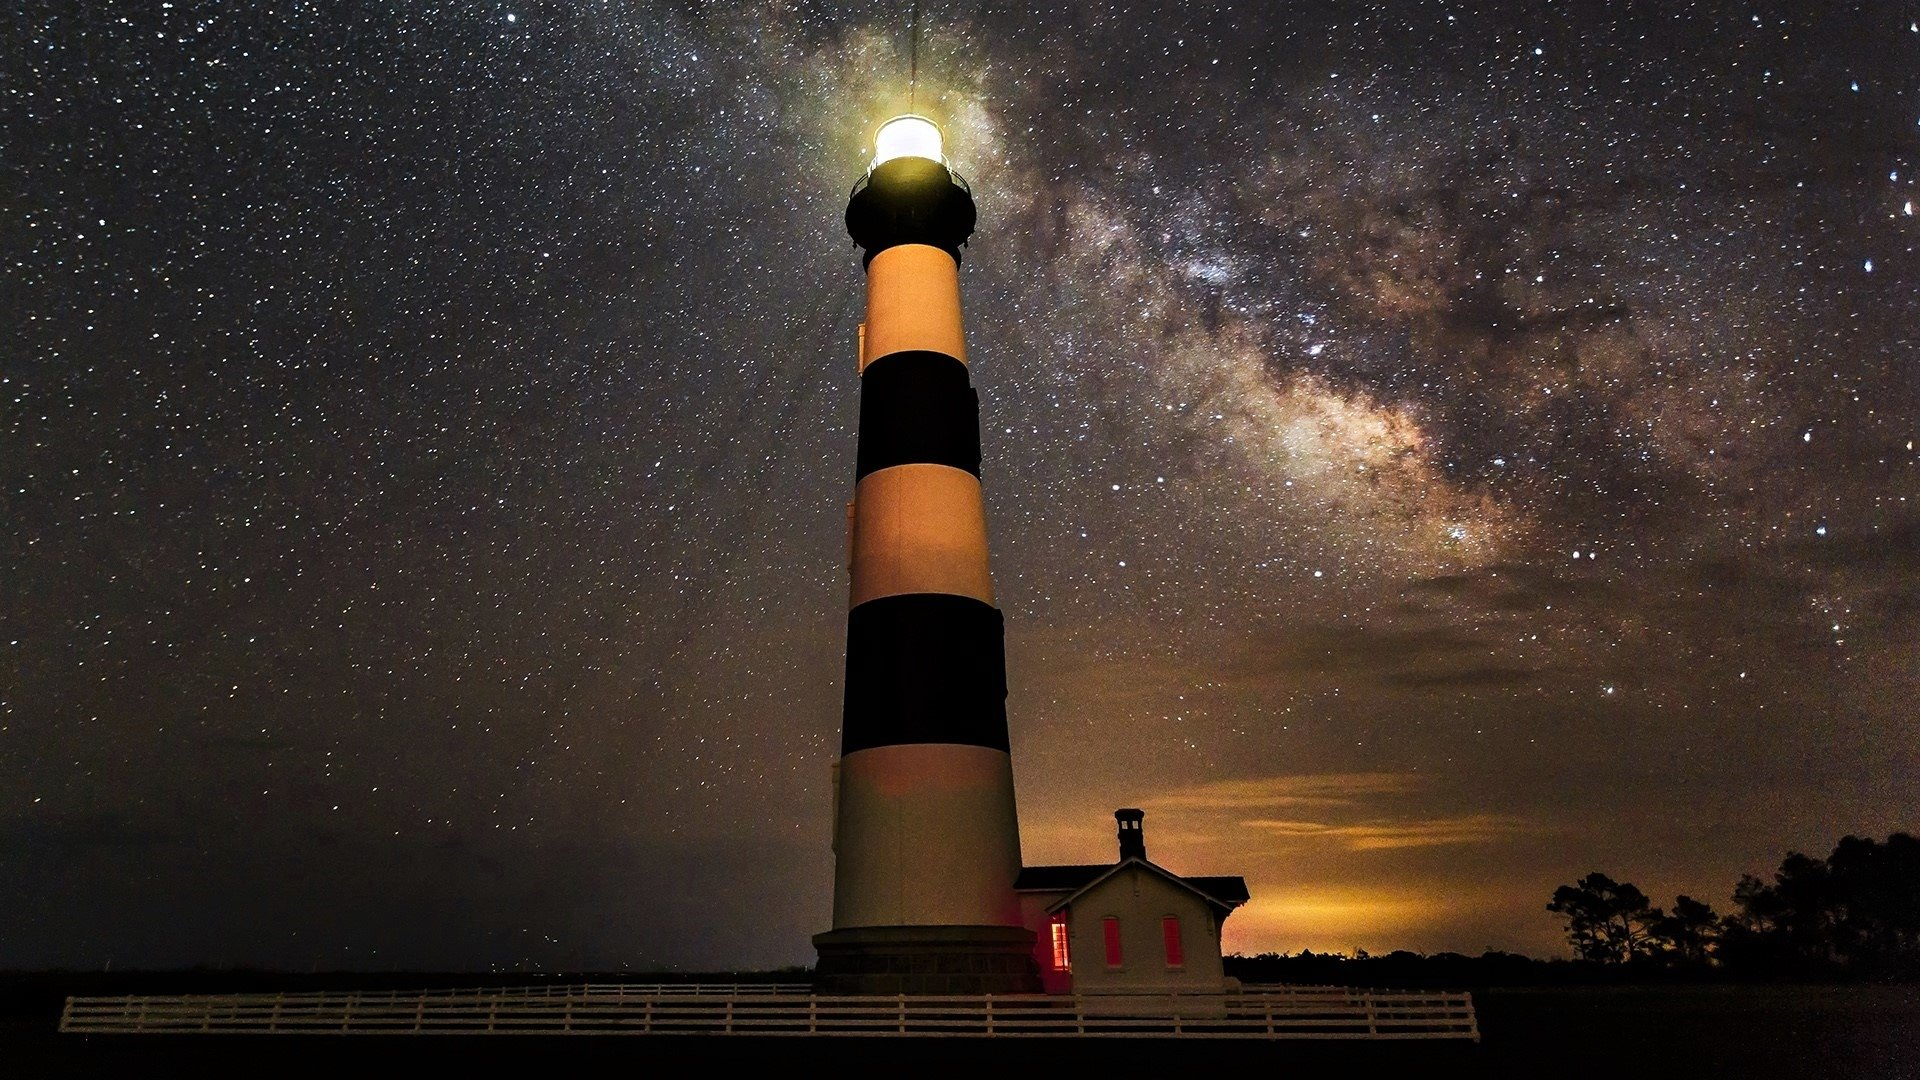 Bodie Lighthouse in North Carolina HD Wallpaper Background Image 1920x1080